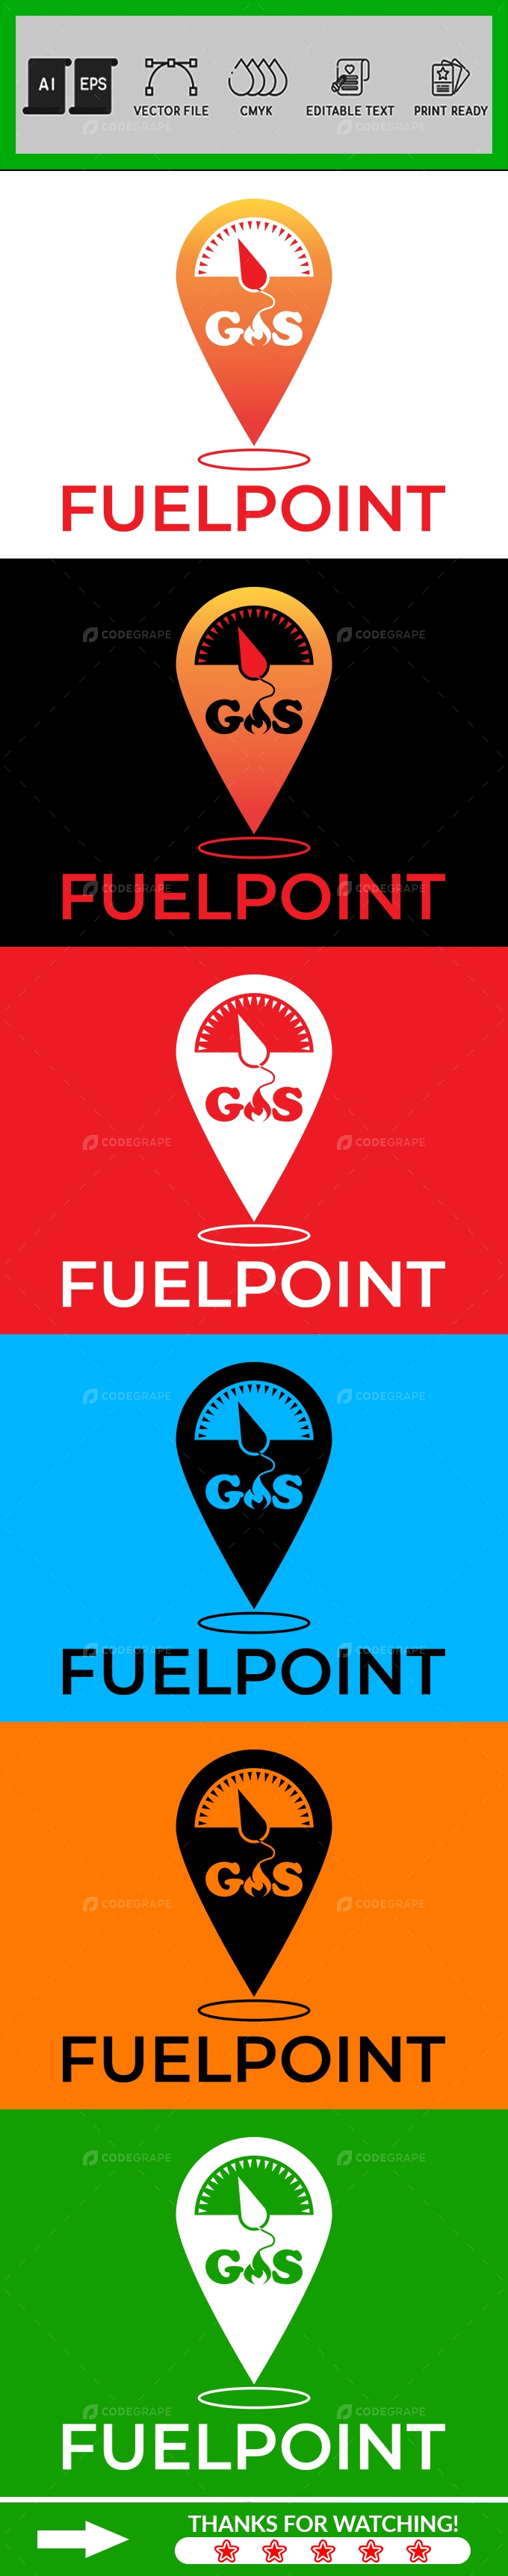 Fuel Point Logo Design Template